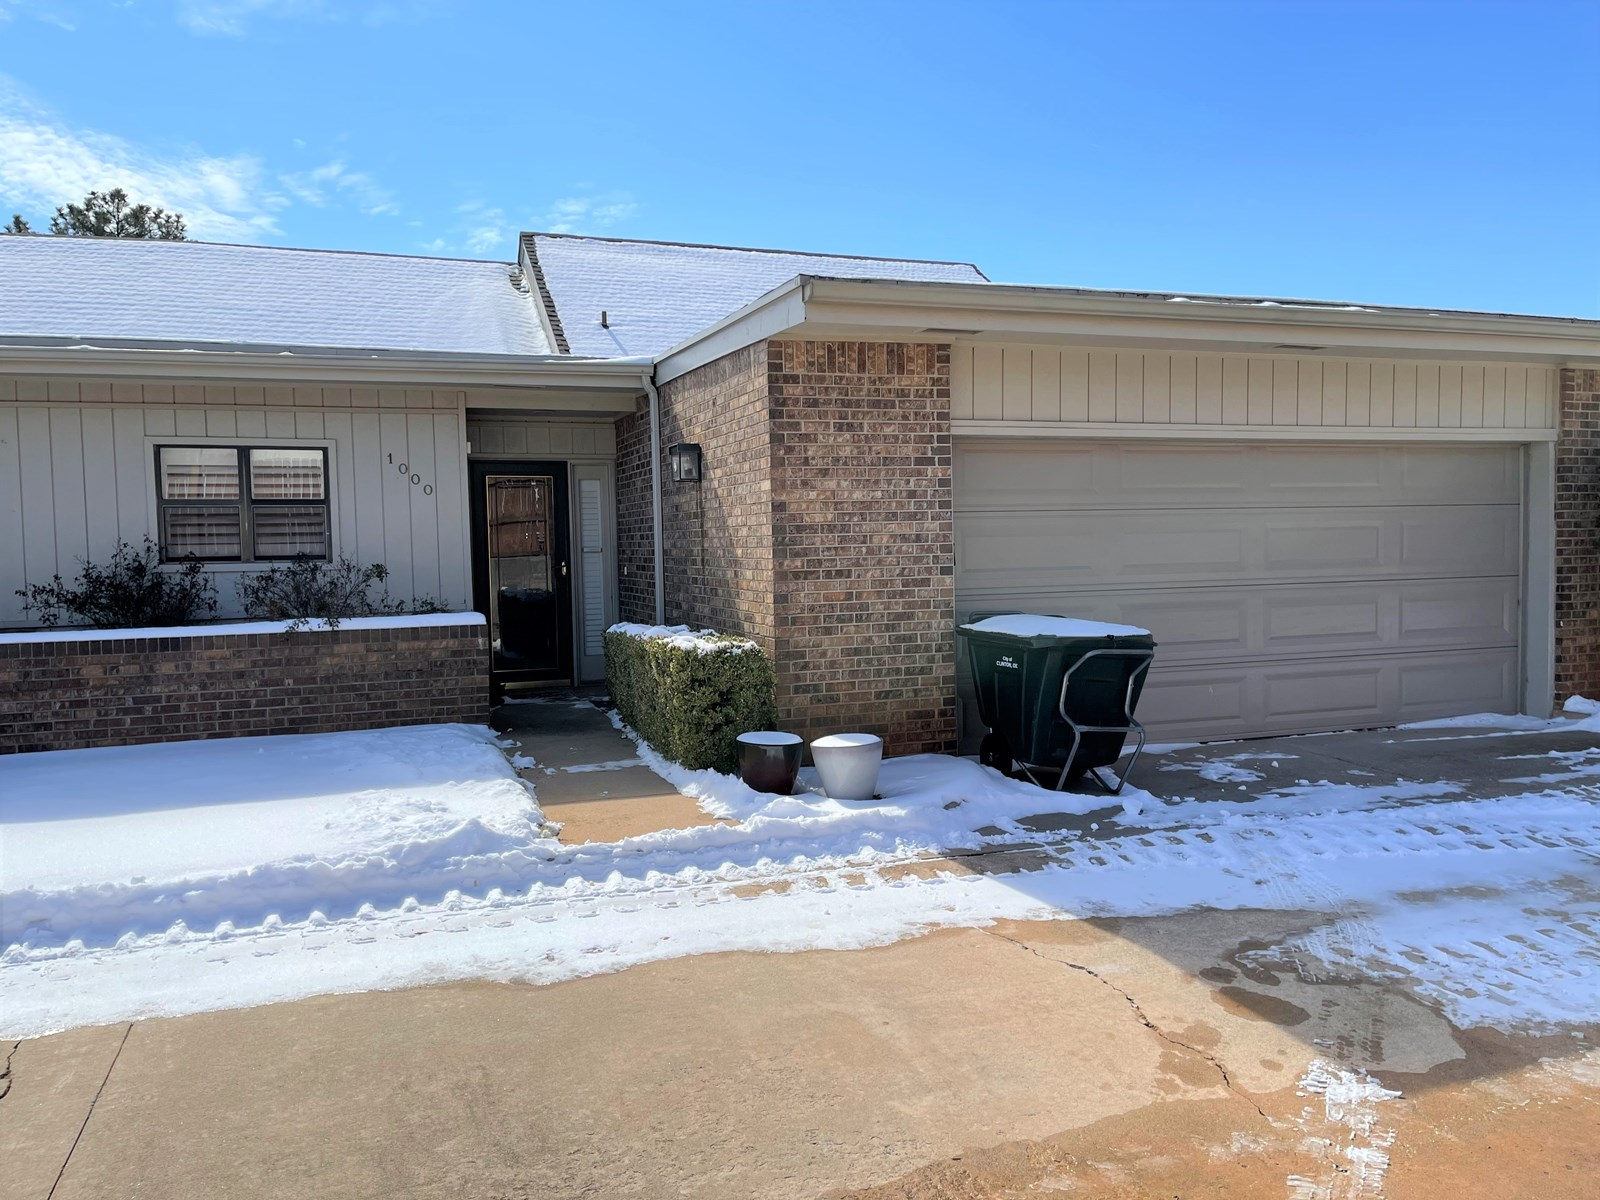 Home for sale in Western Oklahoma, Custer County